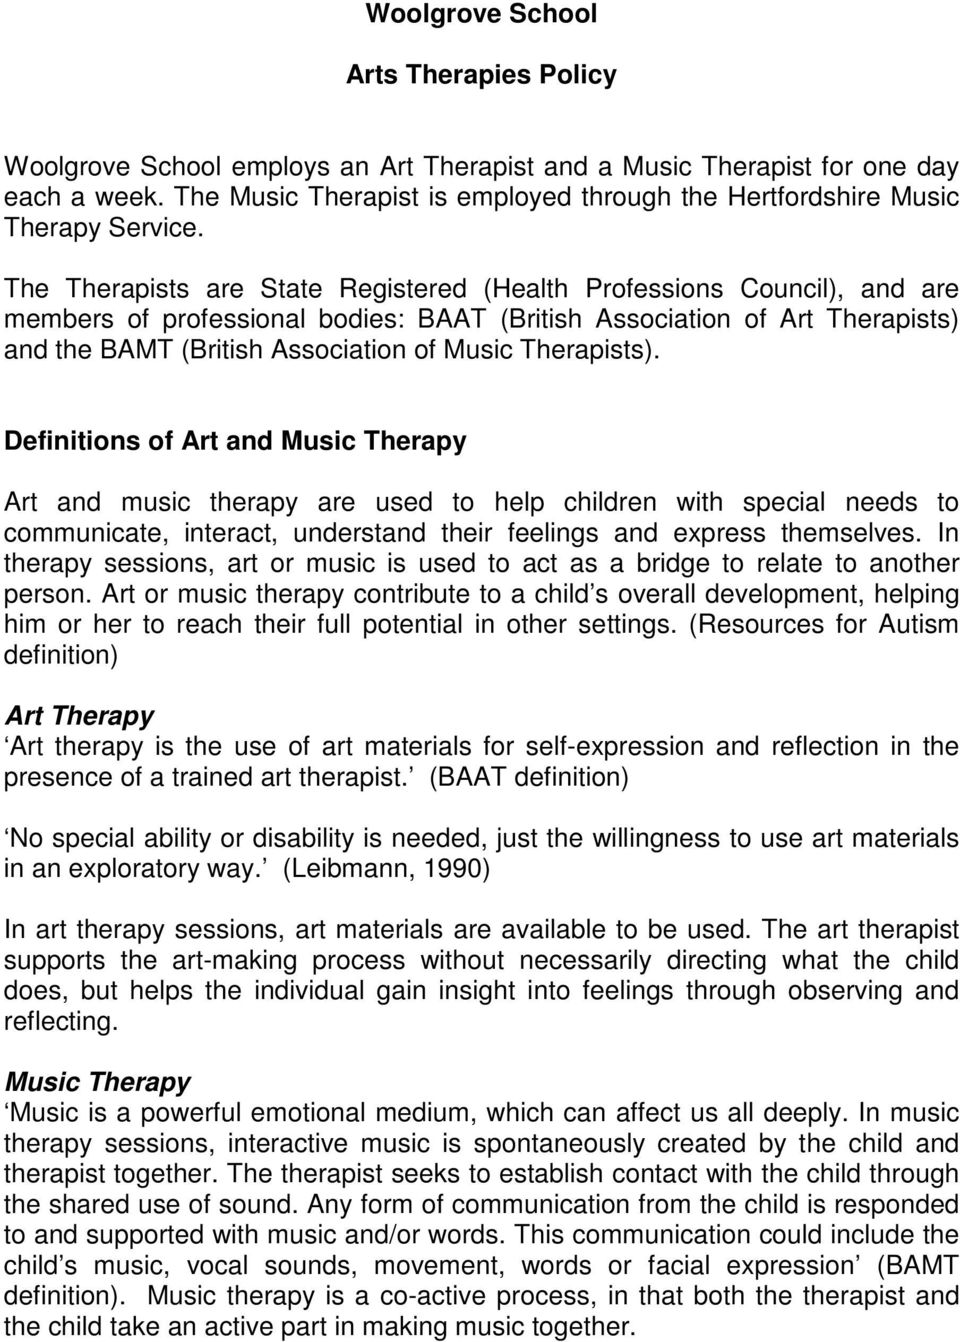 The Therapists are State Registered (Health Professions Council), and are members of professional bodies: BAAT (British Association of Art Therapists) and the BAMT (British Association of Music